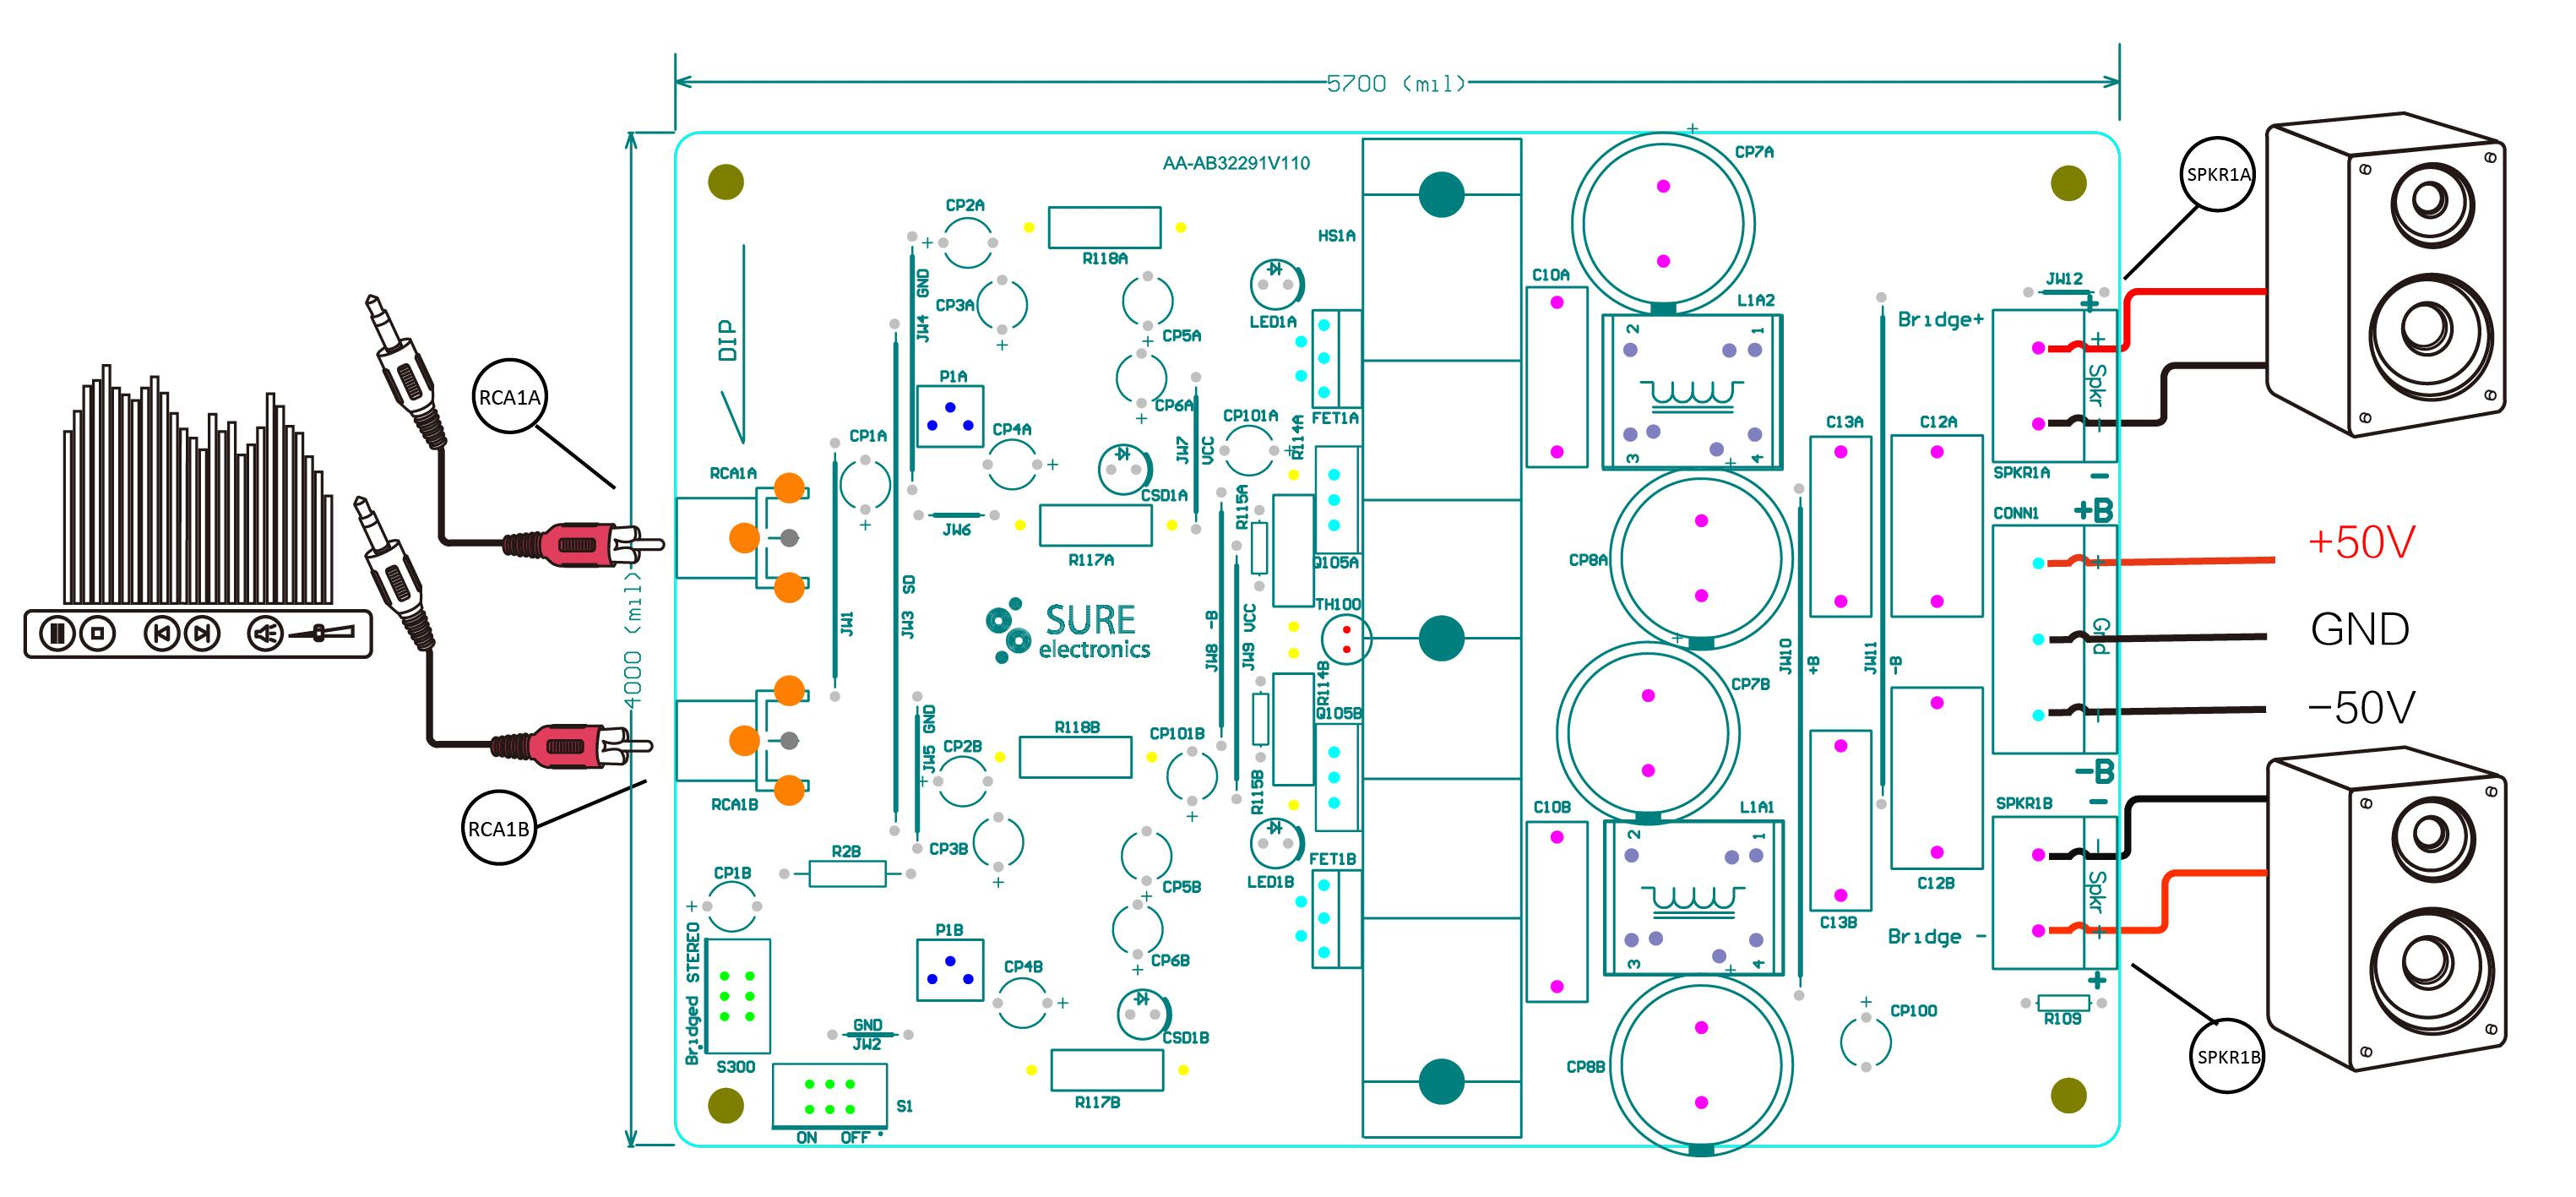 Sure Electronics Webstore 2 X 125 Watt Class D Audio Amplifier 300 Board Tas5613 300w Mono Power Amp Model Selection Guide